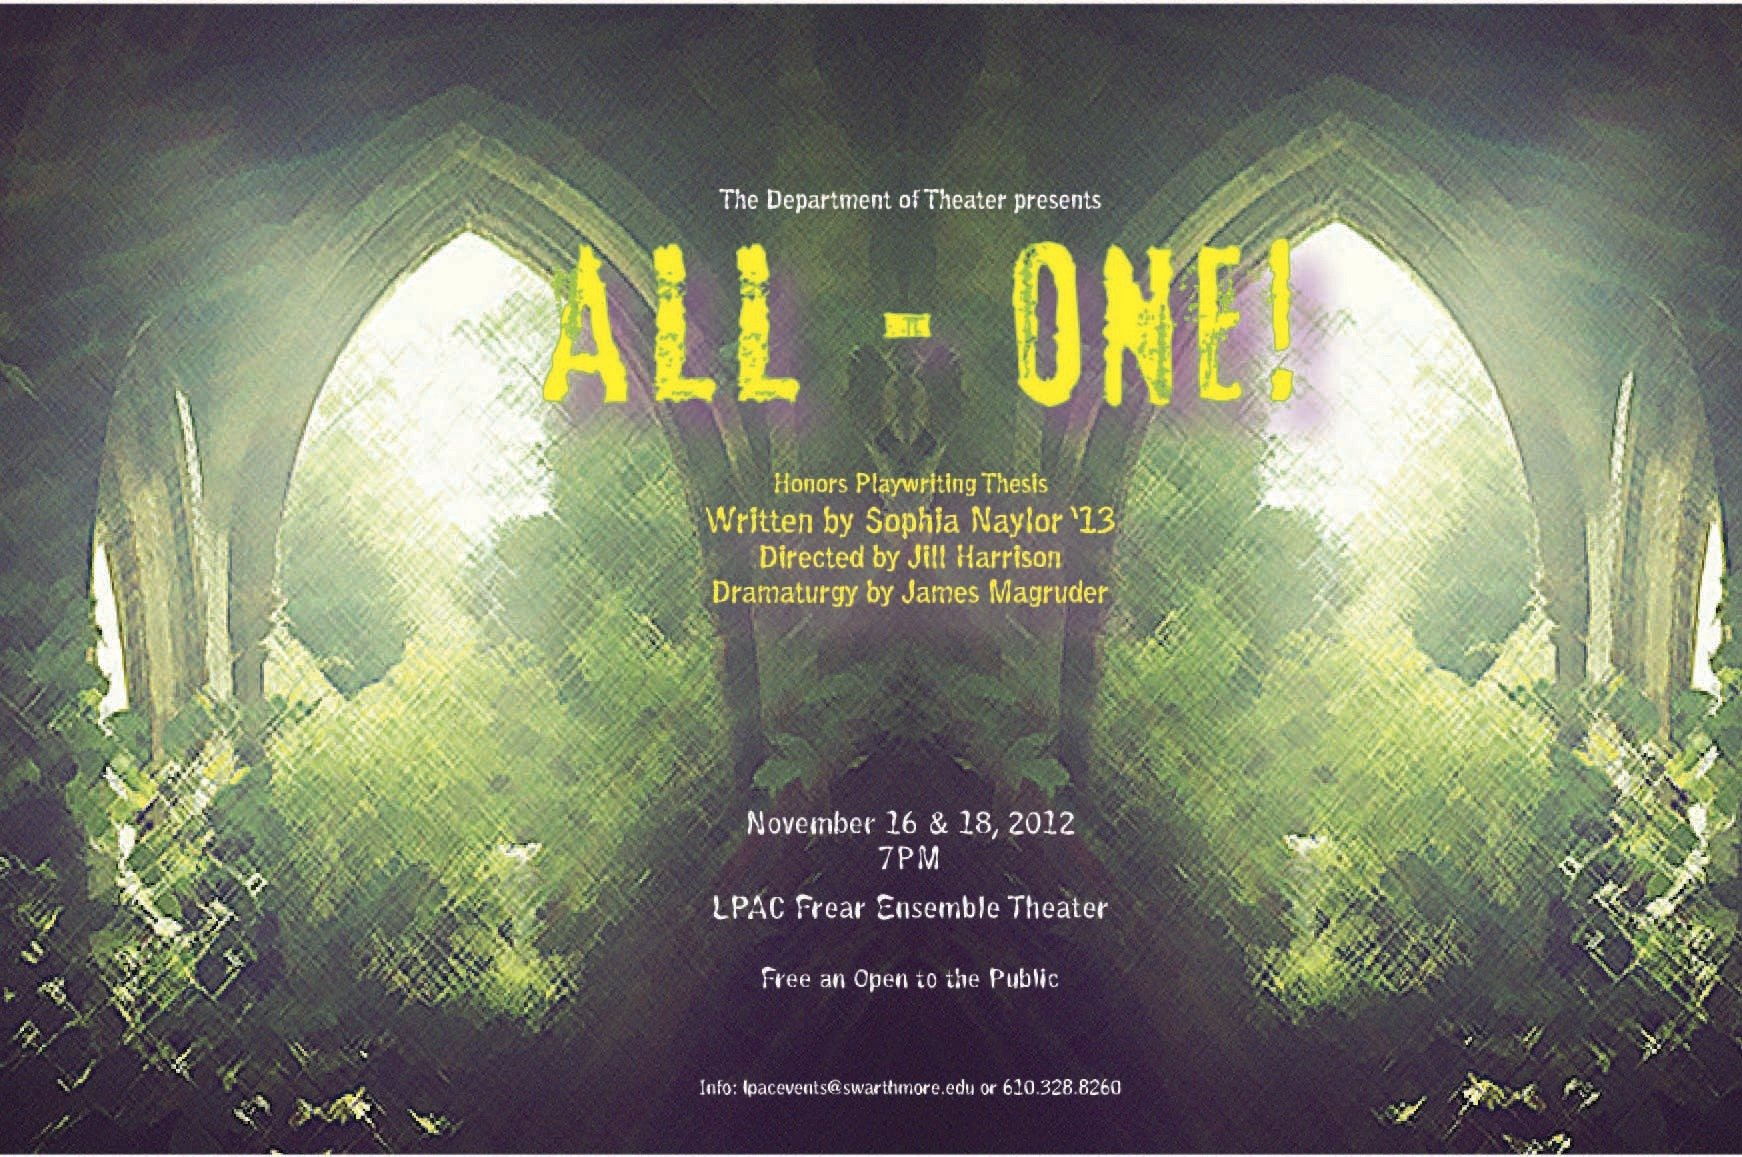 Playwriting All-One